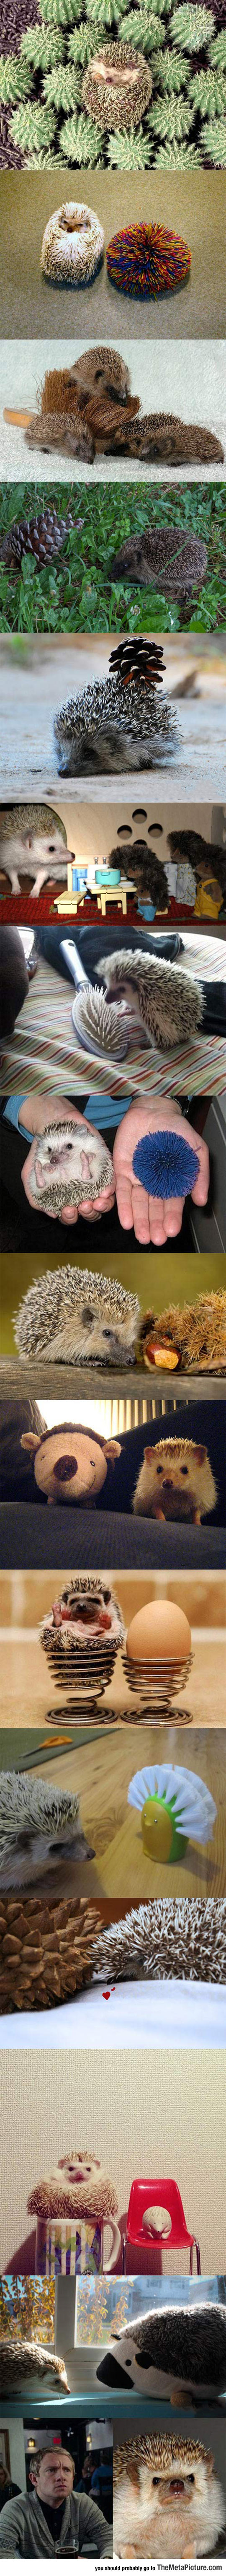 cool-hedgehogs-similar-look-alike-